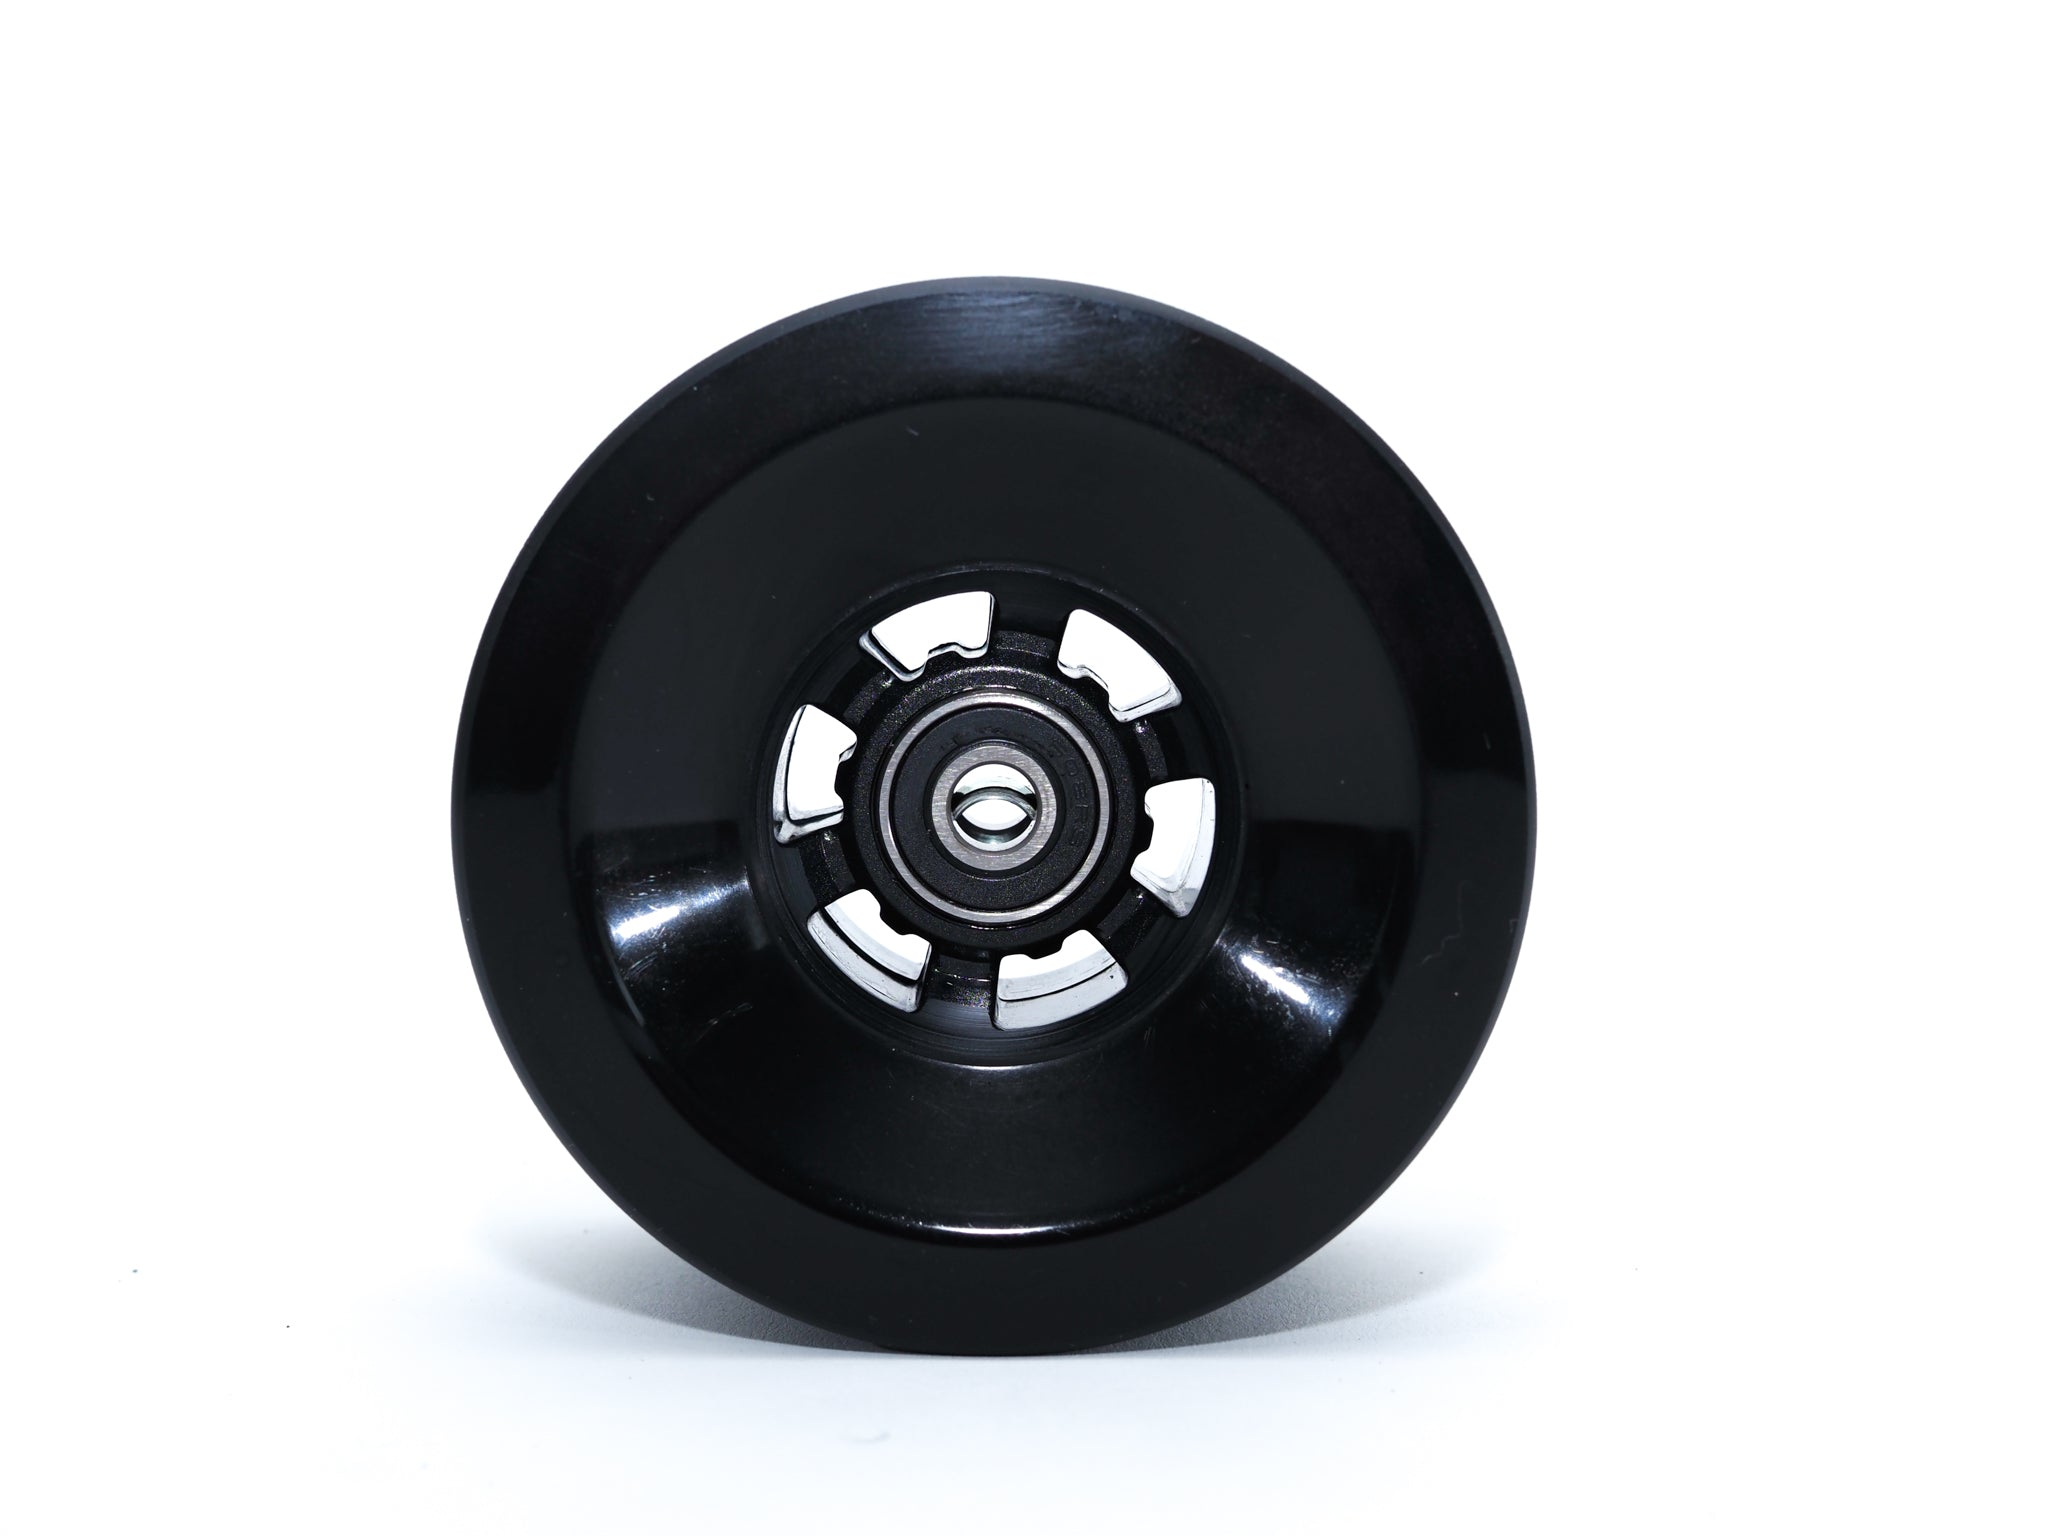 97MM PU Electric Skateboard Wheels by ONSRA